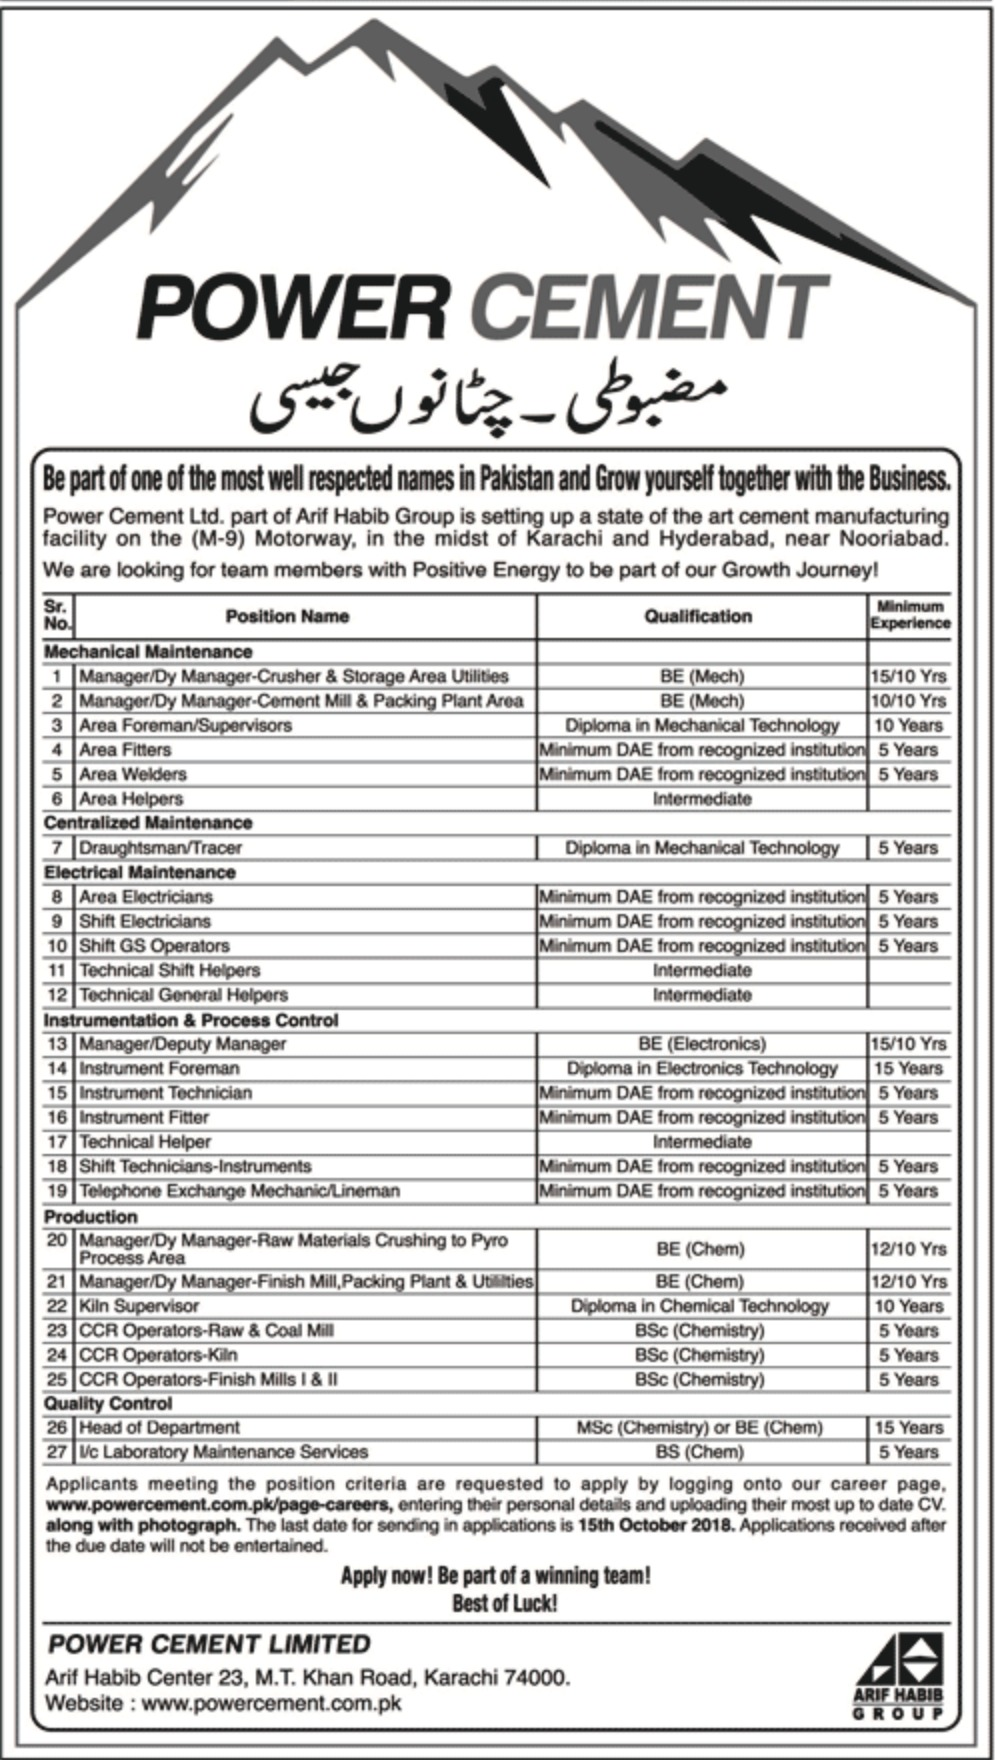 Power Cement Ltd Karachi Latest Jobs 2018